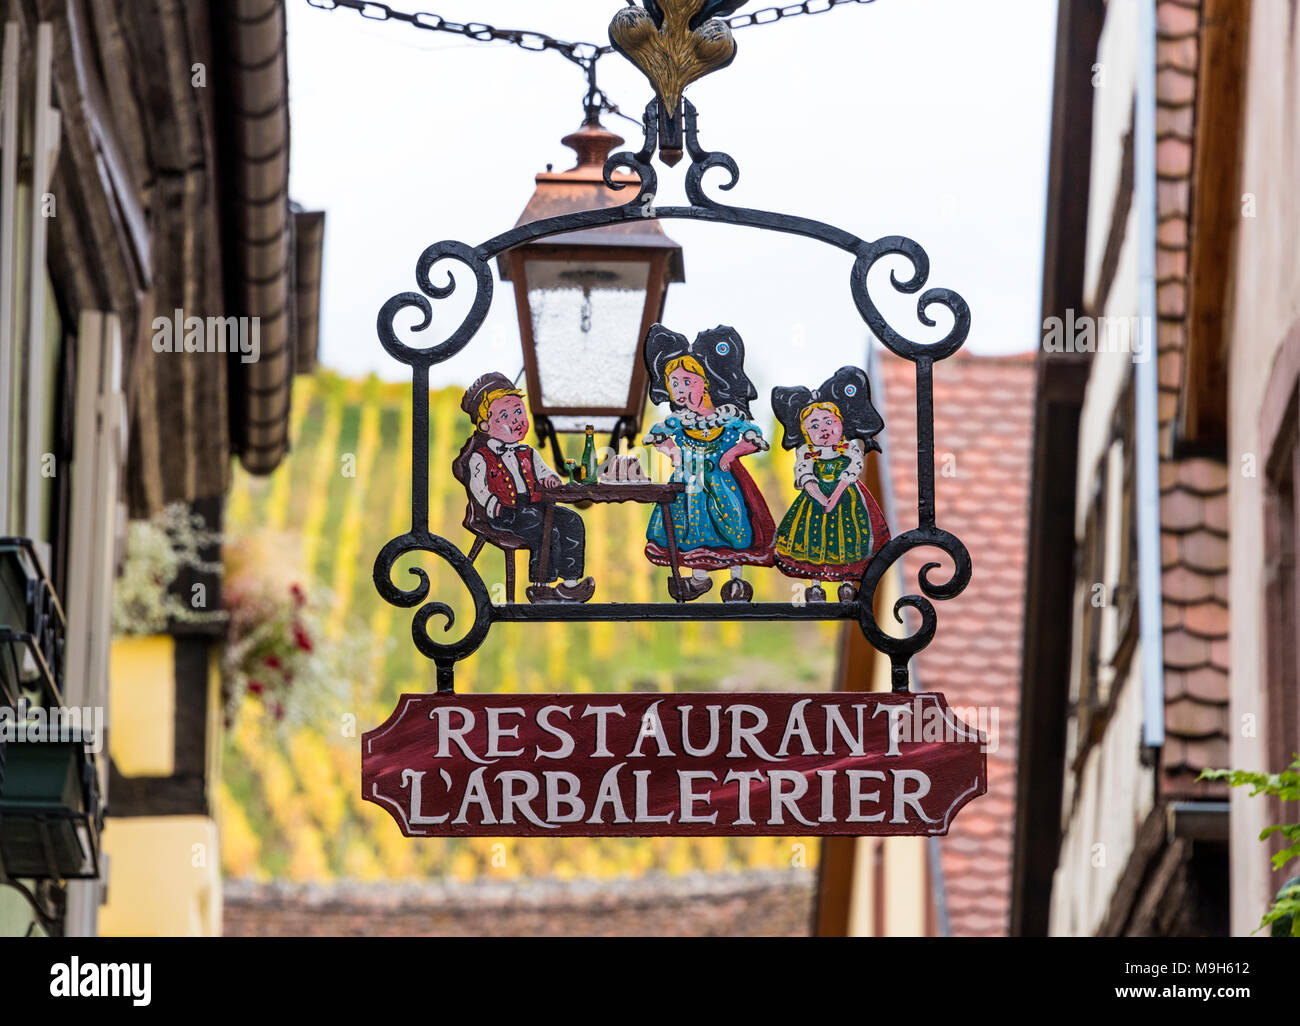 Restaurant sign in the medieval town of Riquewihr, Alsatian Wine Route, France - Stock Image